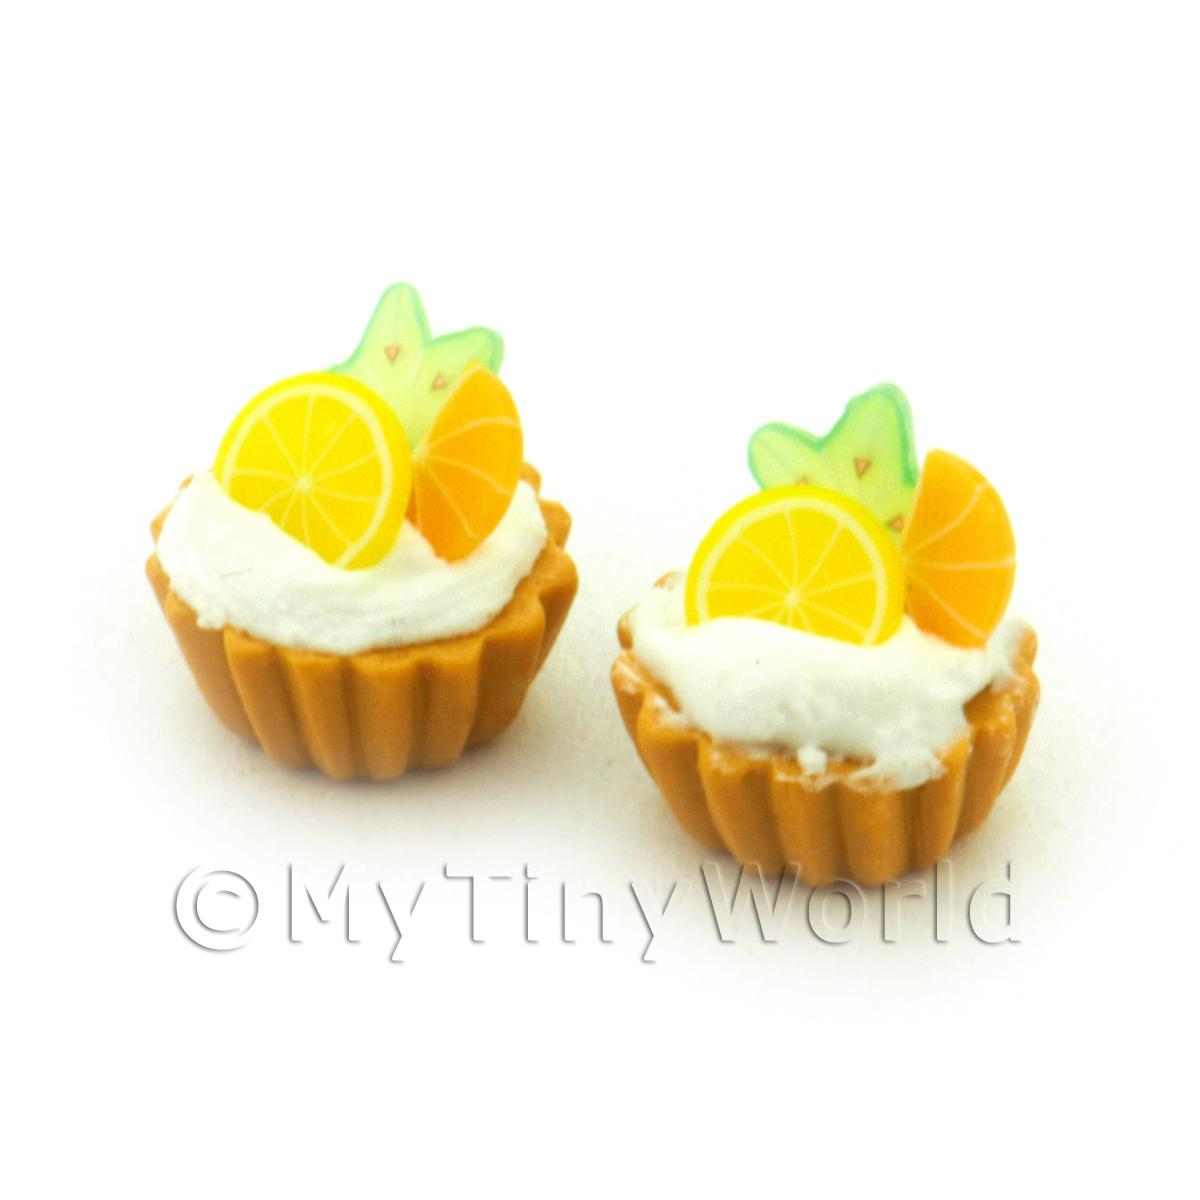 Dolls House Miniature Star Fruit, Lemon And Orange Tart